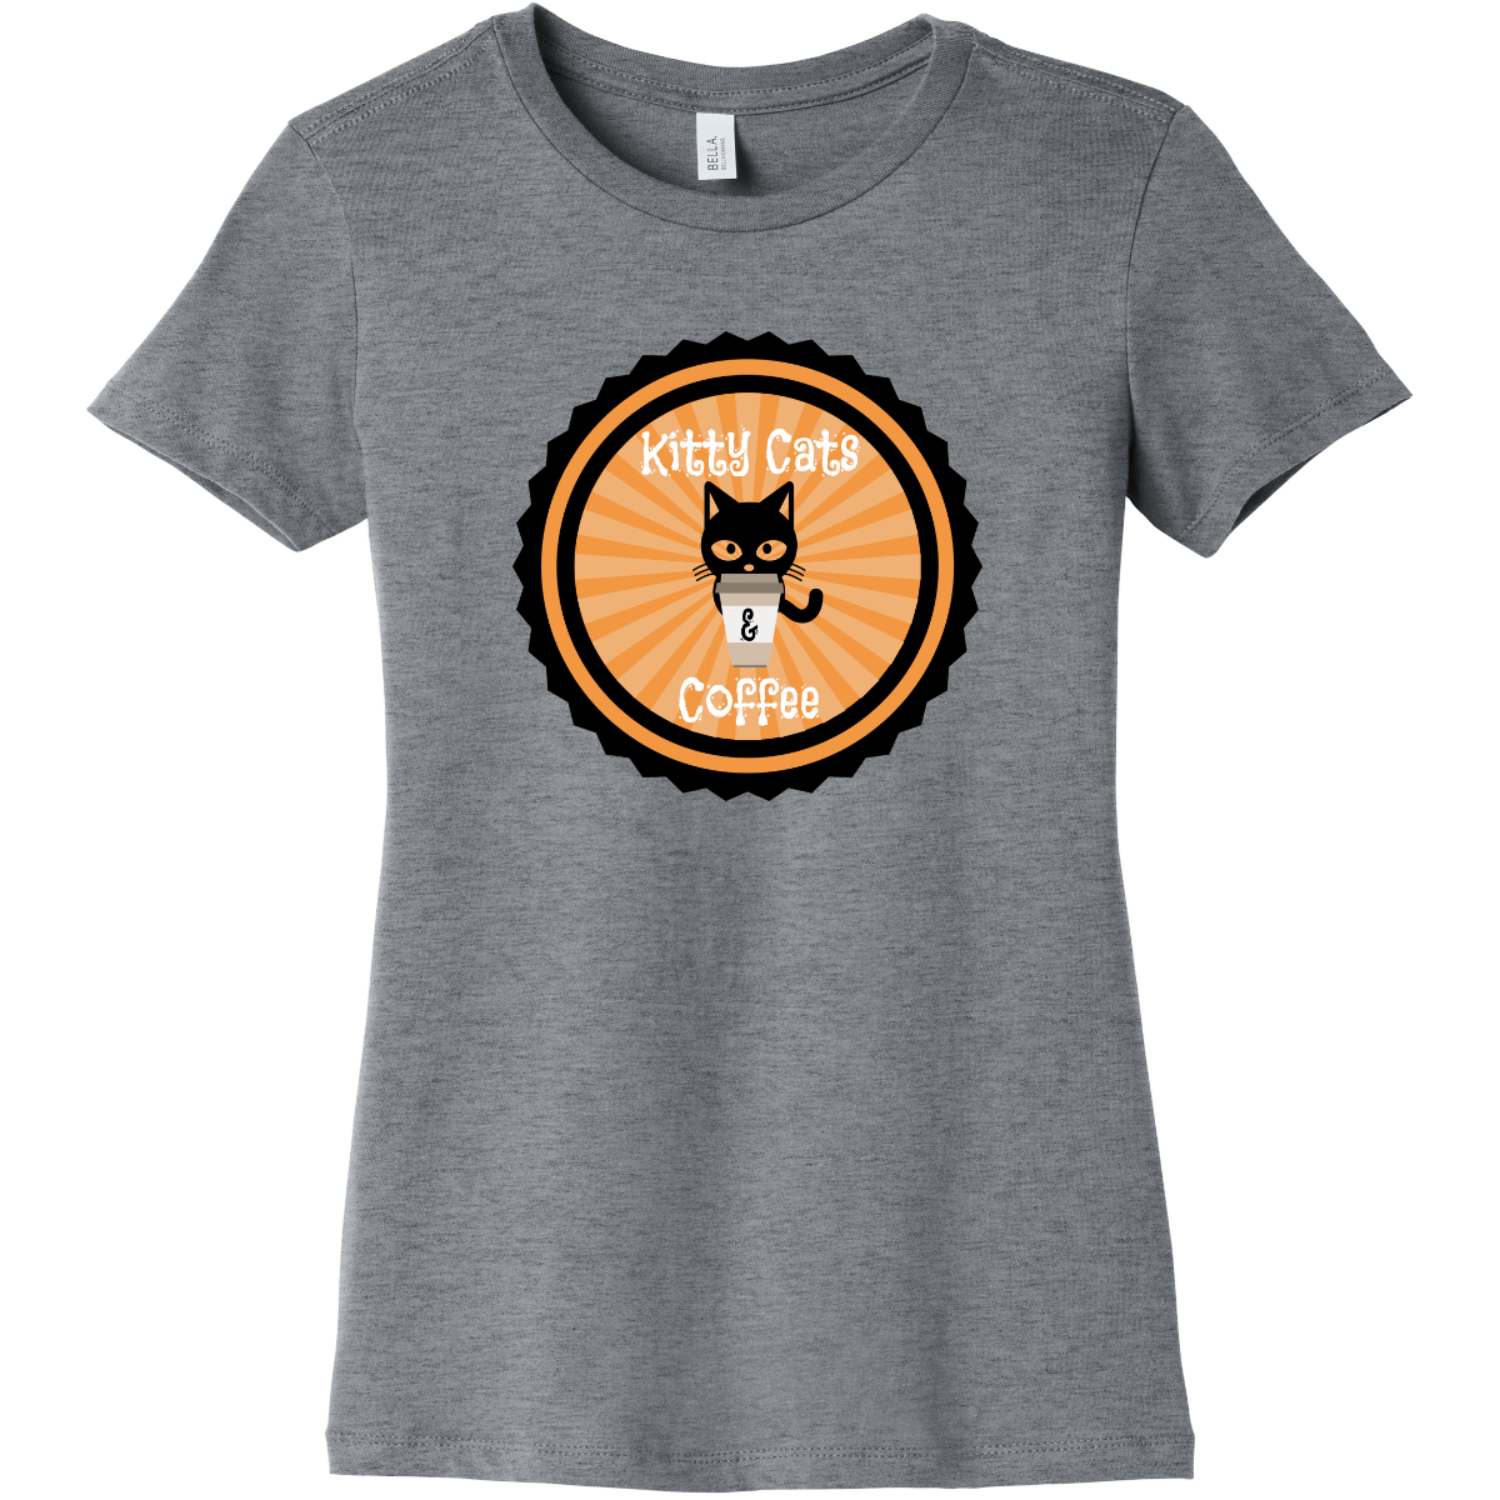 Kitty Cats and Coffee Ladies T Shirt Athletic Heather Bella Canvas 6004 Ladies The Favorite Tee